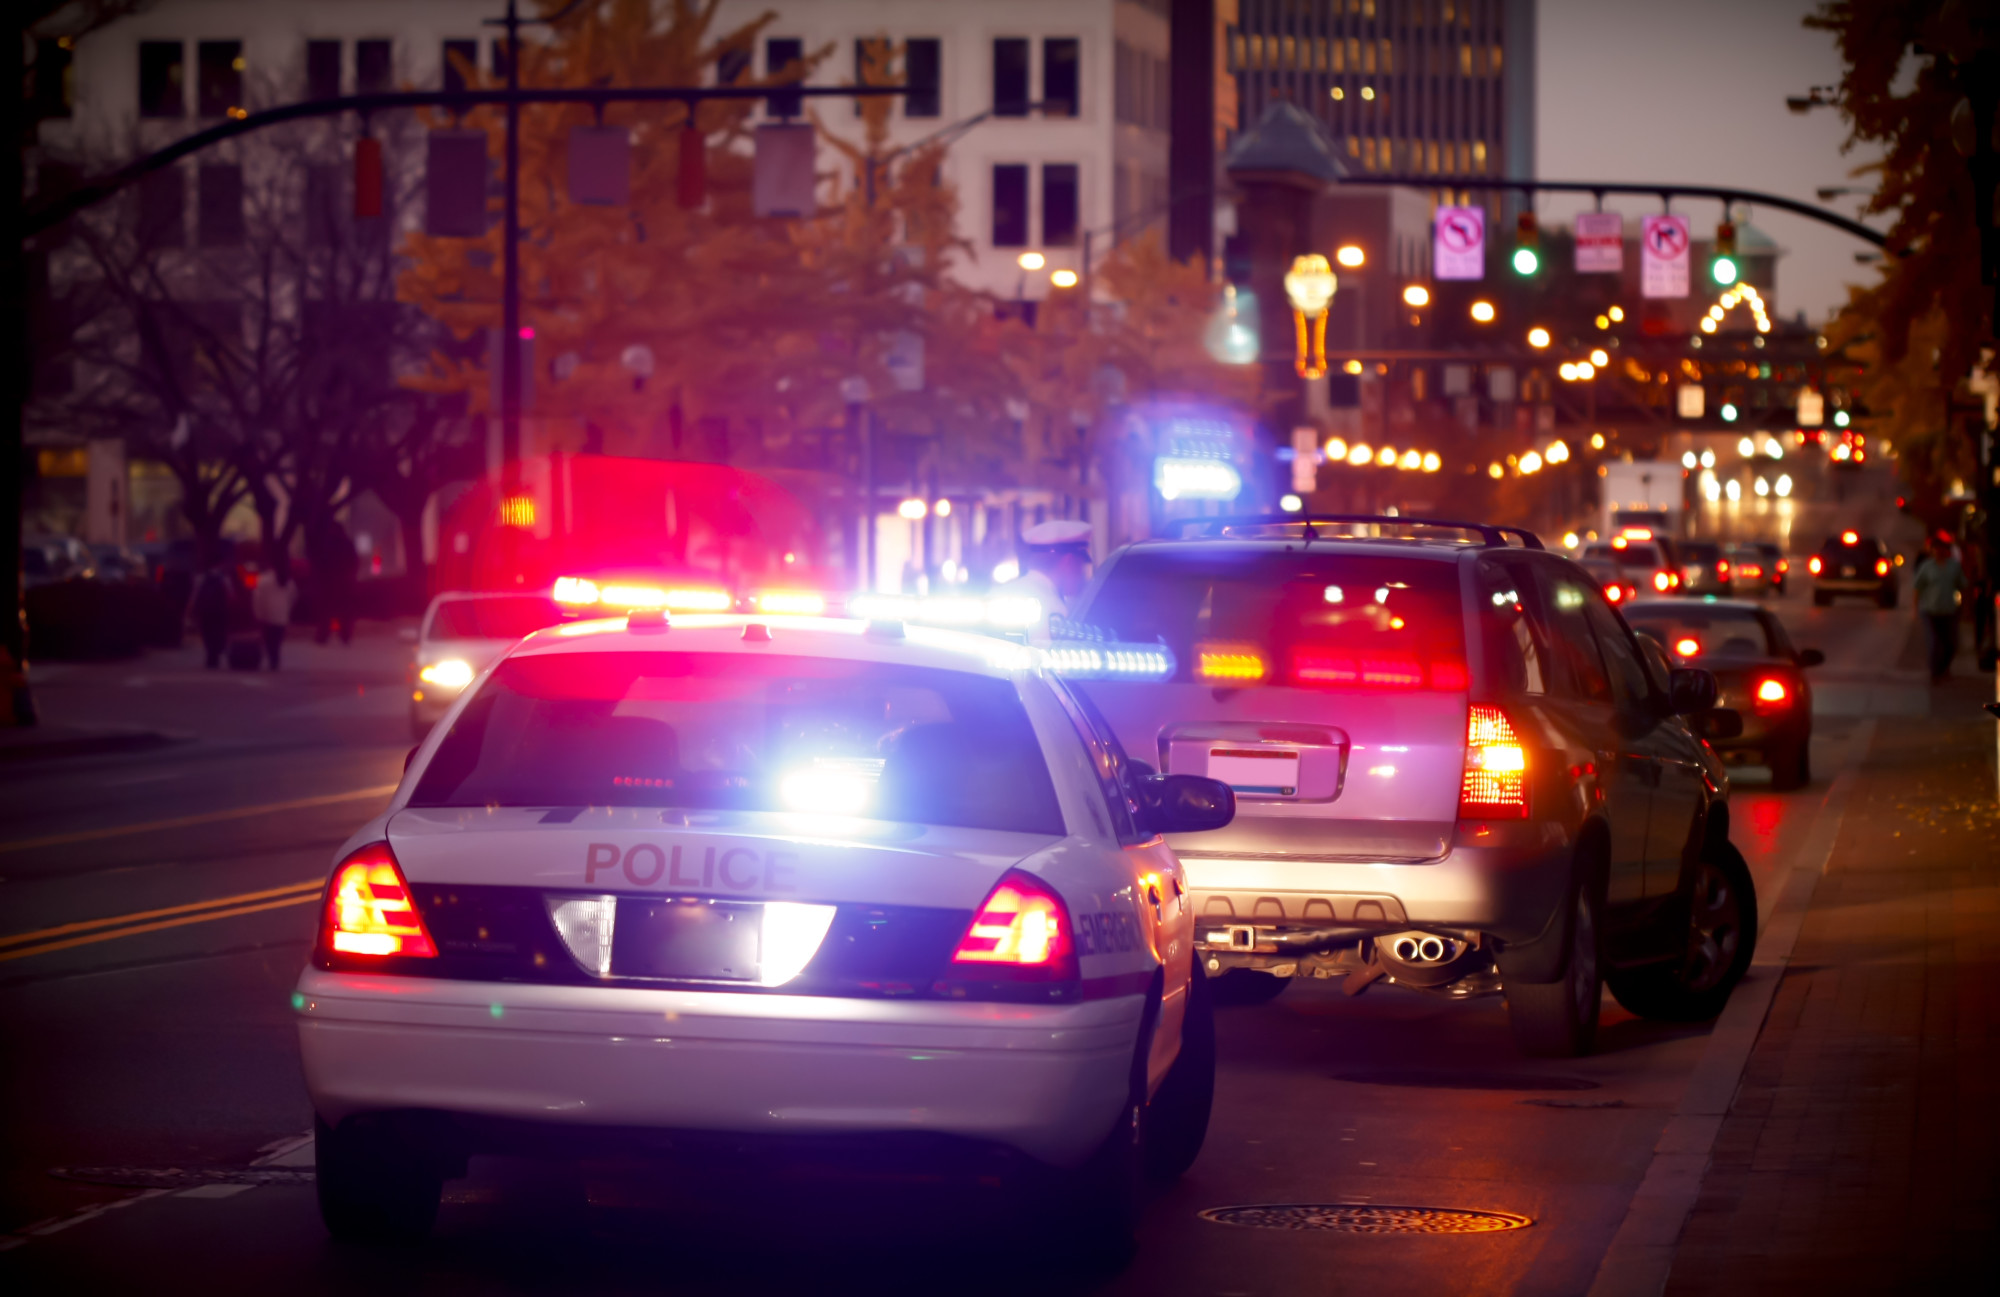 DWI Vs DUI: What's the Difference?